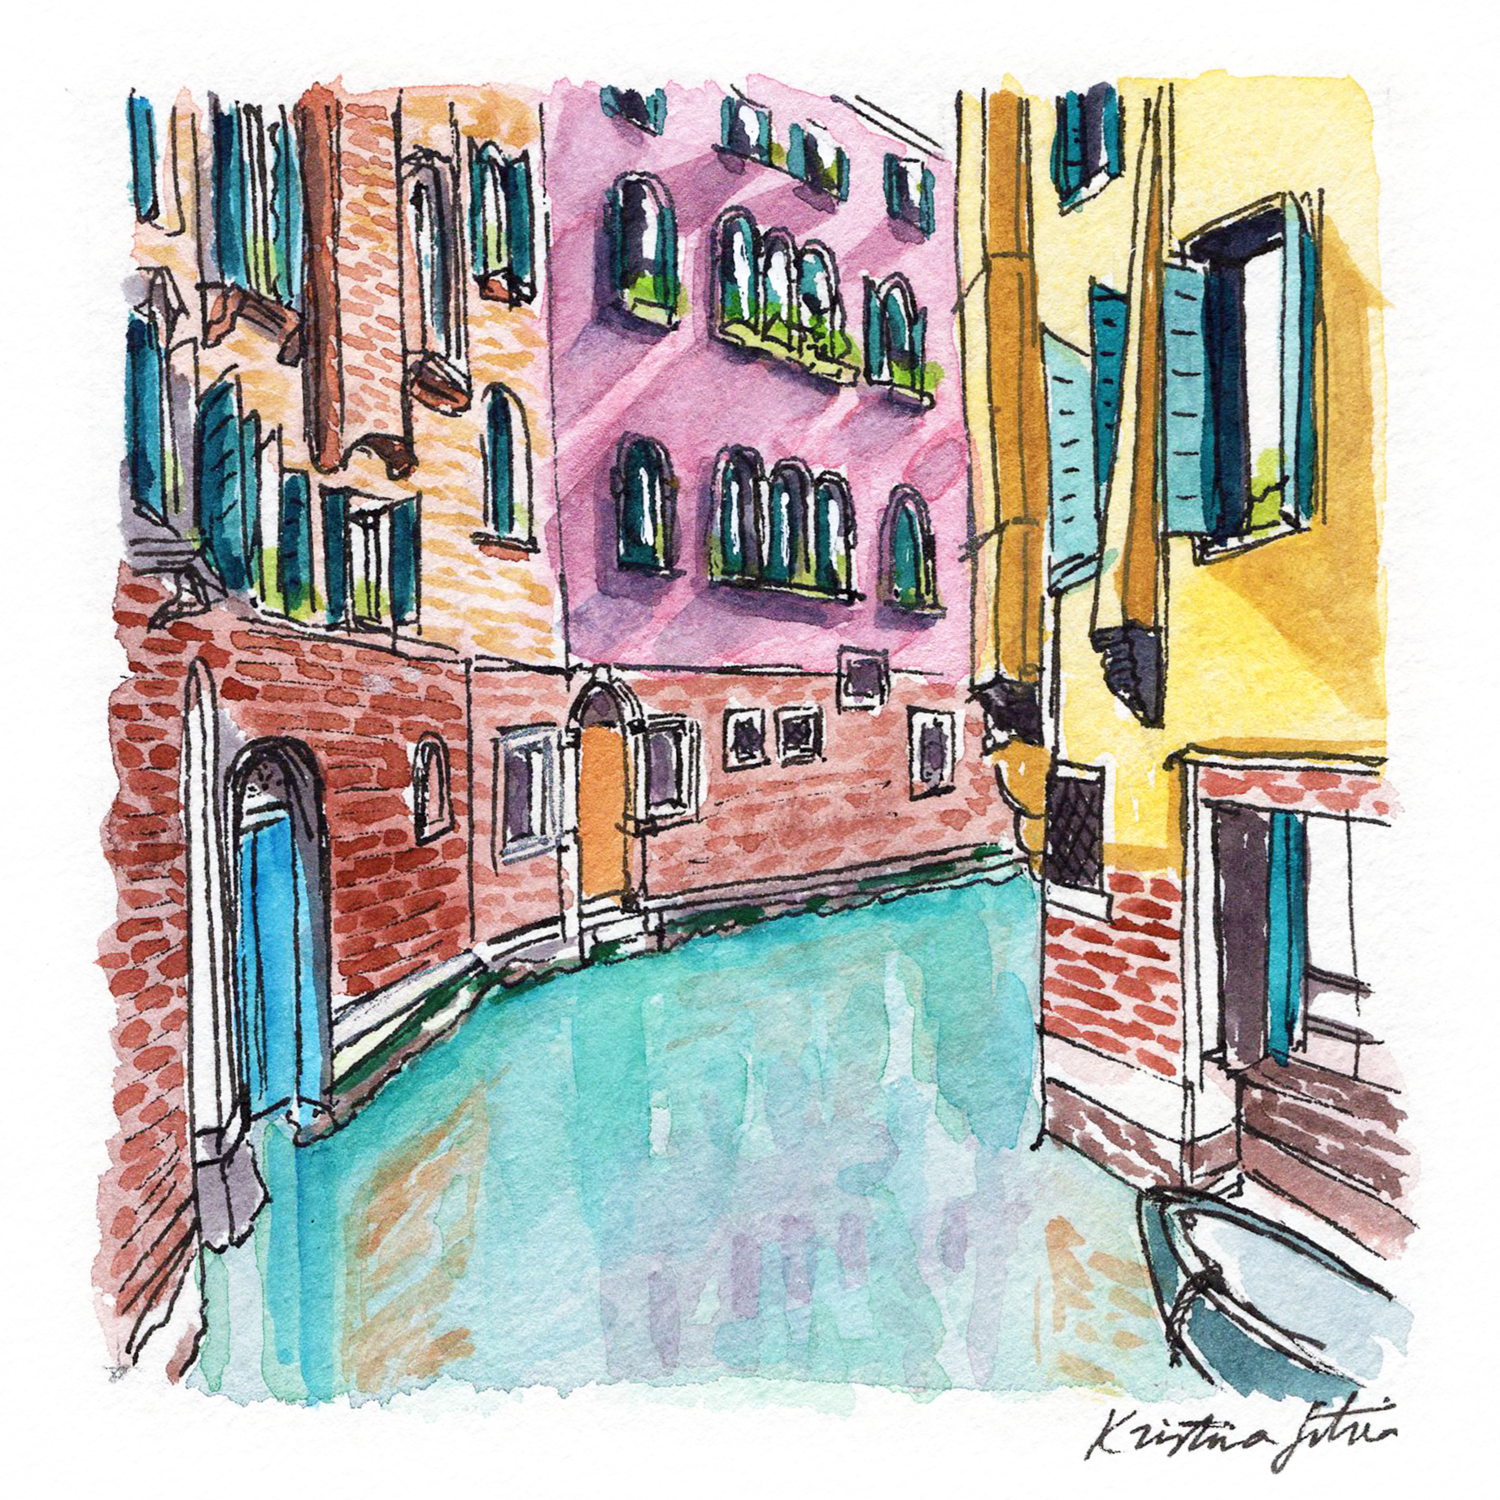 Where the streets are water. - TRAVEL | VENICE, ITALY.Where the streets are water and there's always something wonderful just around the corner.